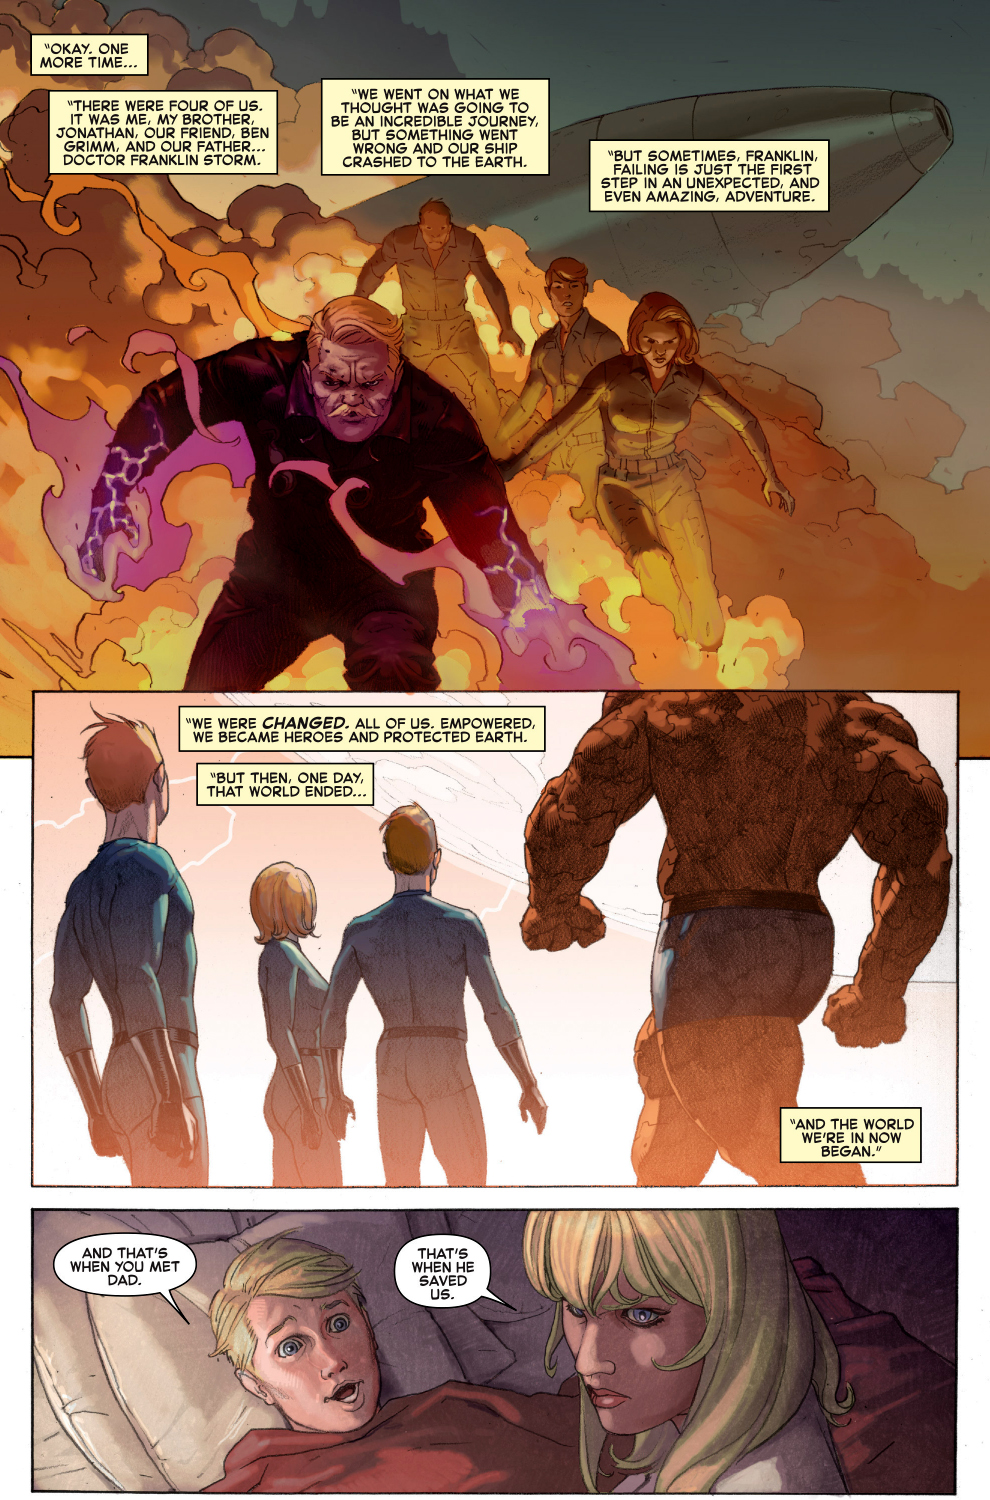 the story of the fantastic four (secret wars)